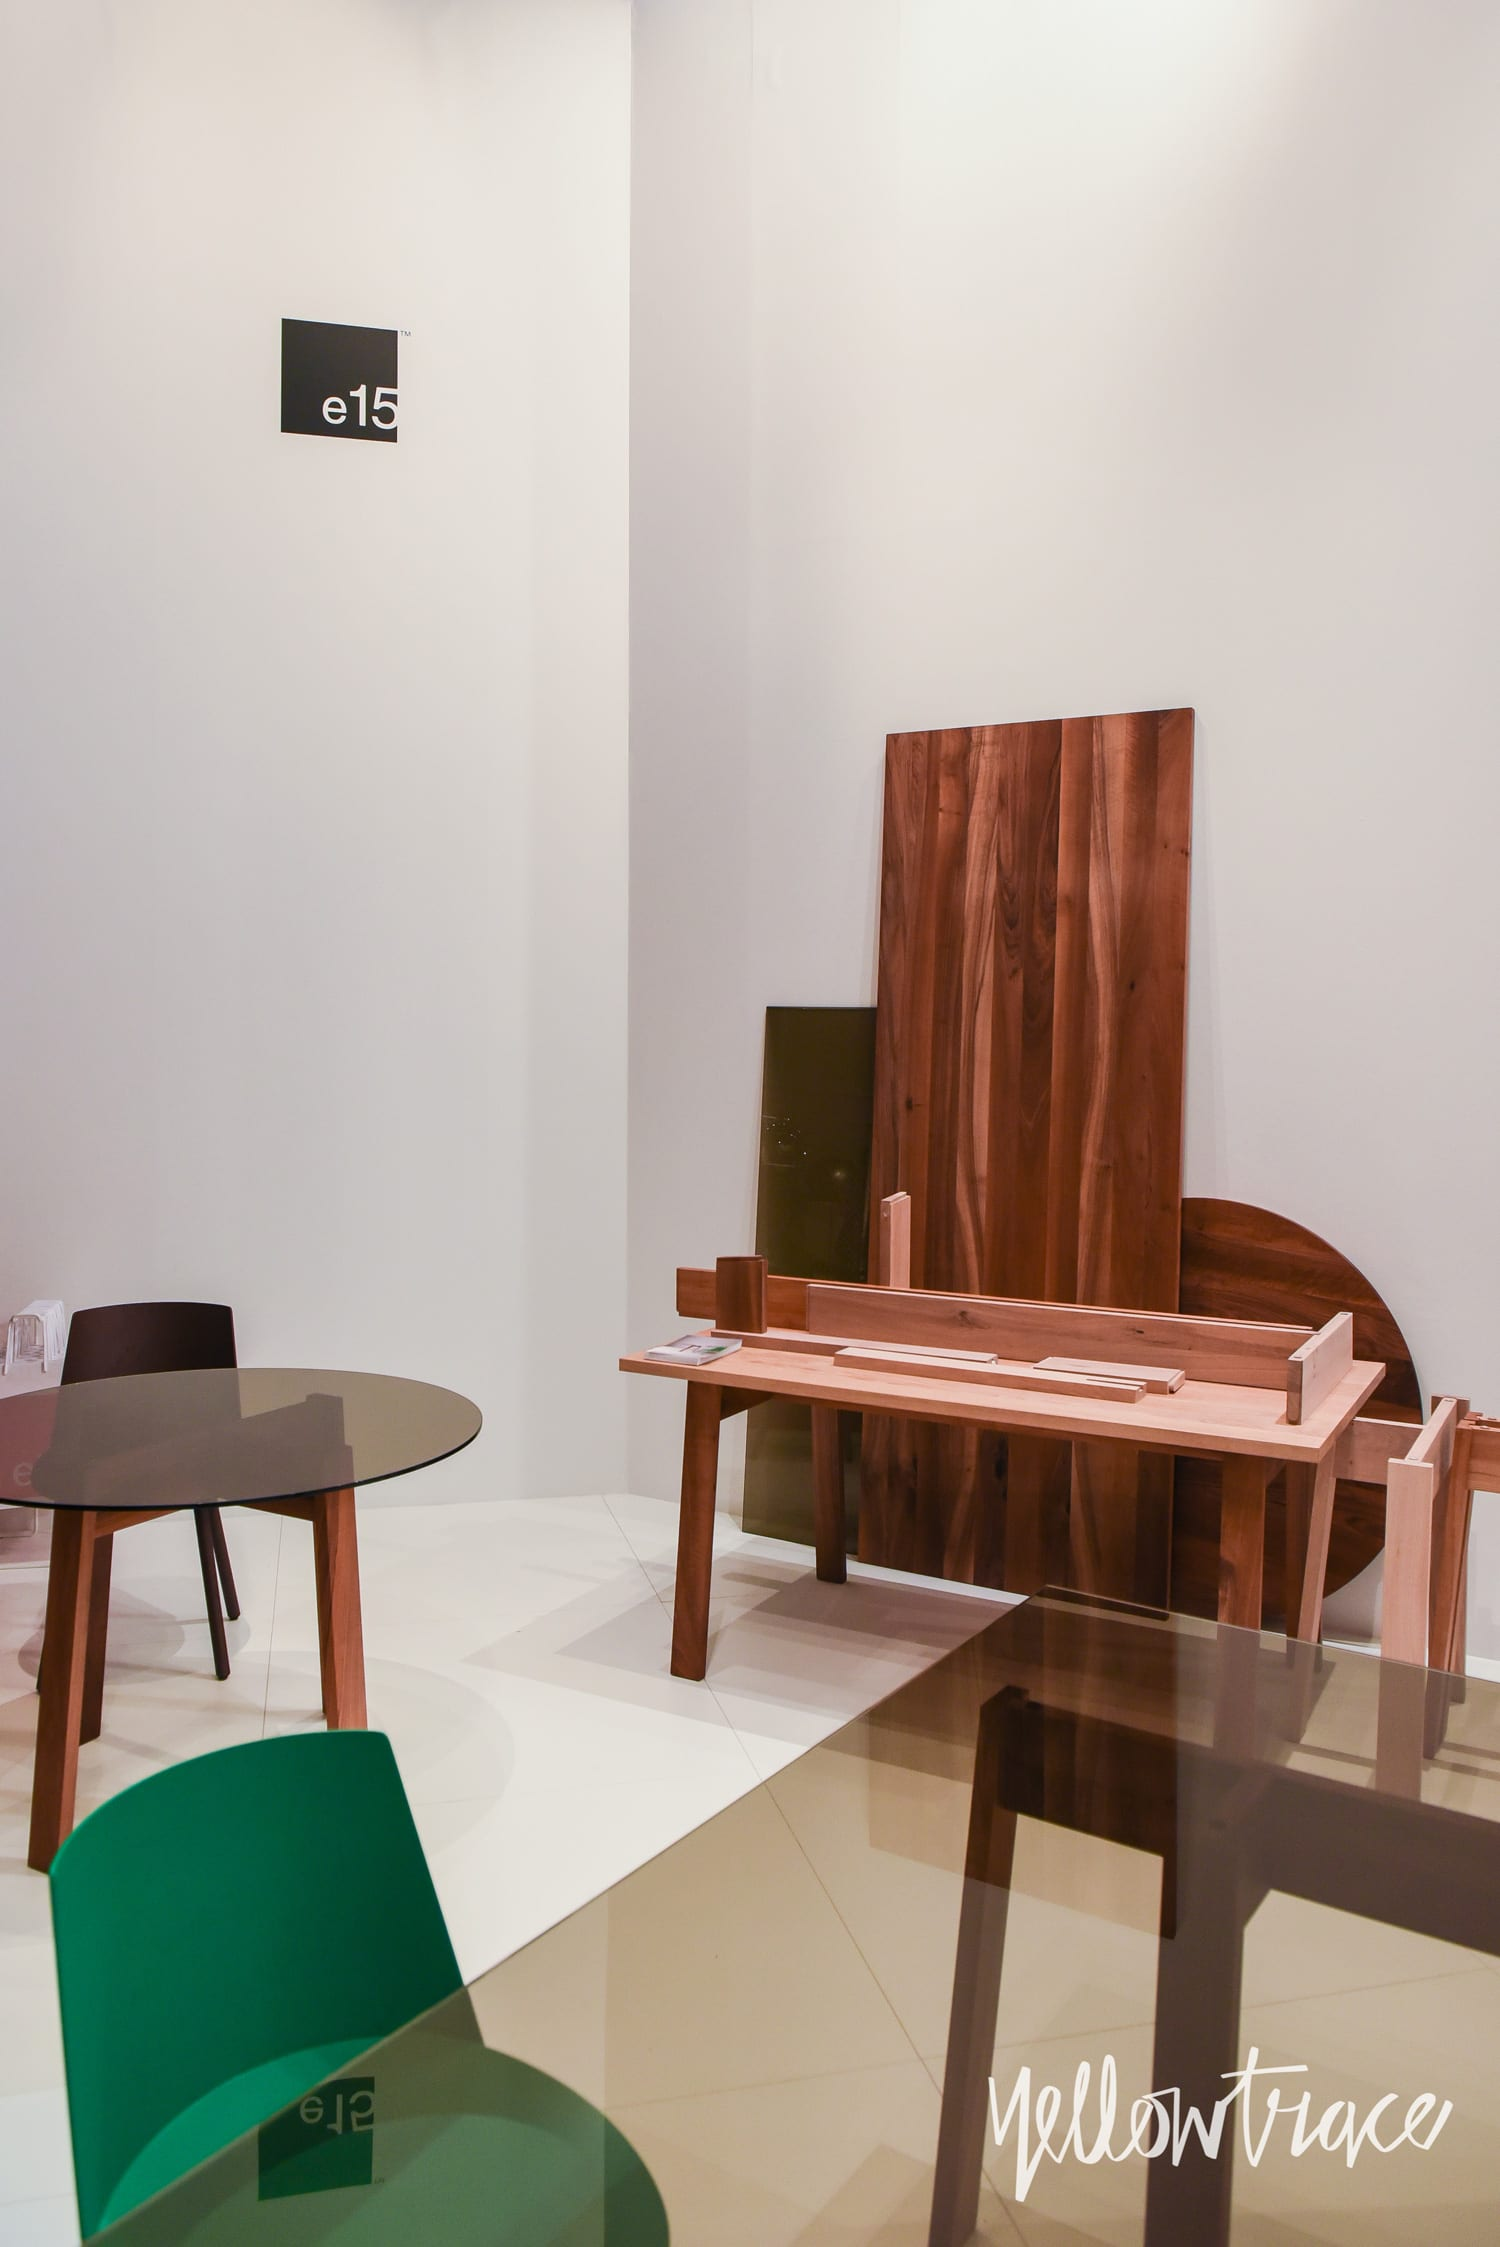 Milan Design Week 2018 Highlights, e15 Stand at Salone del Mobile 2018. Photo © Nick Hughes | #Milantrace2018